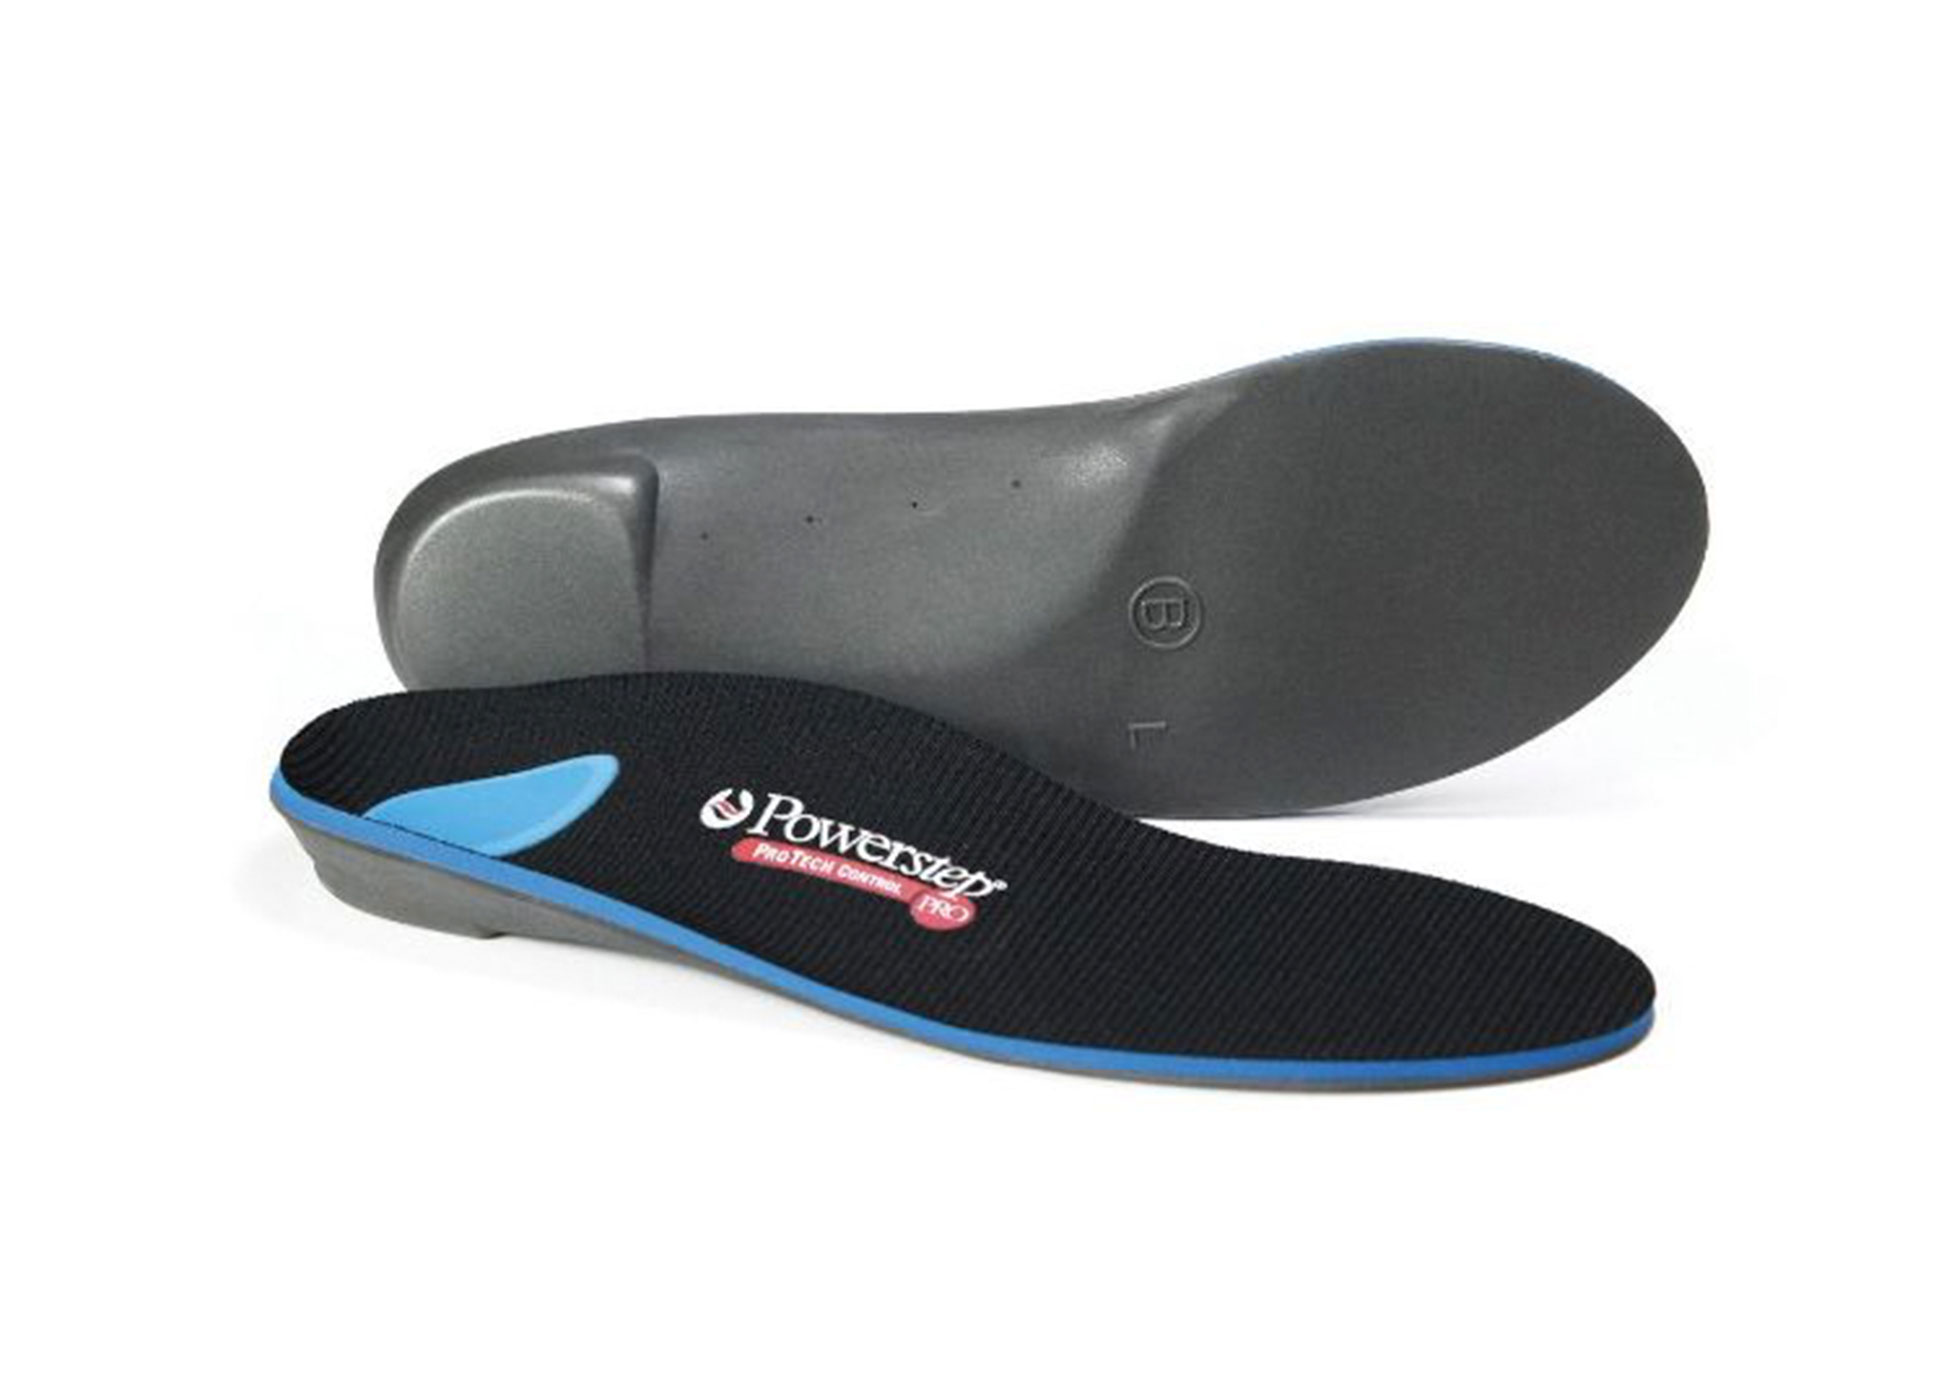 Carnation Footcare - Powerstep Pro - Code E - Mens - 7 - 7.5 / Womens - 8.5 - 9 - Per Pair Insoles